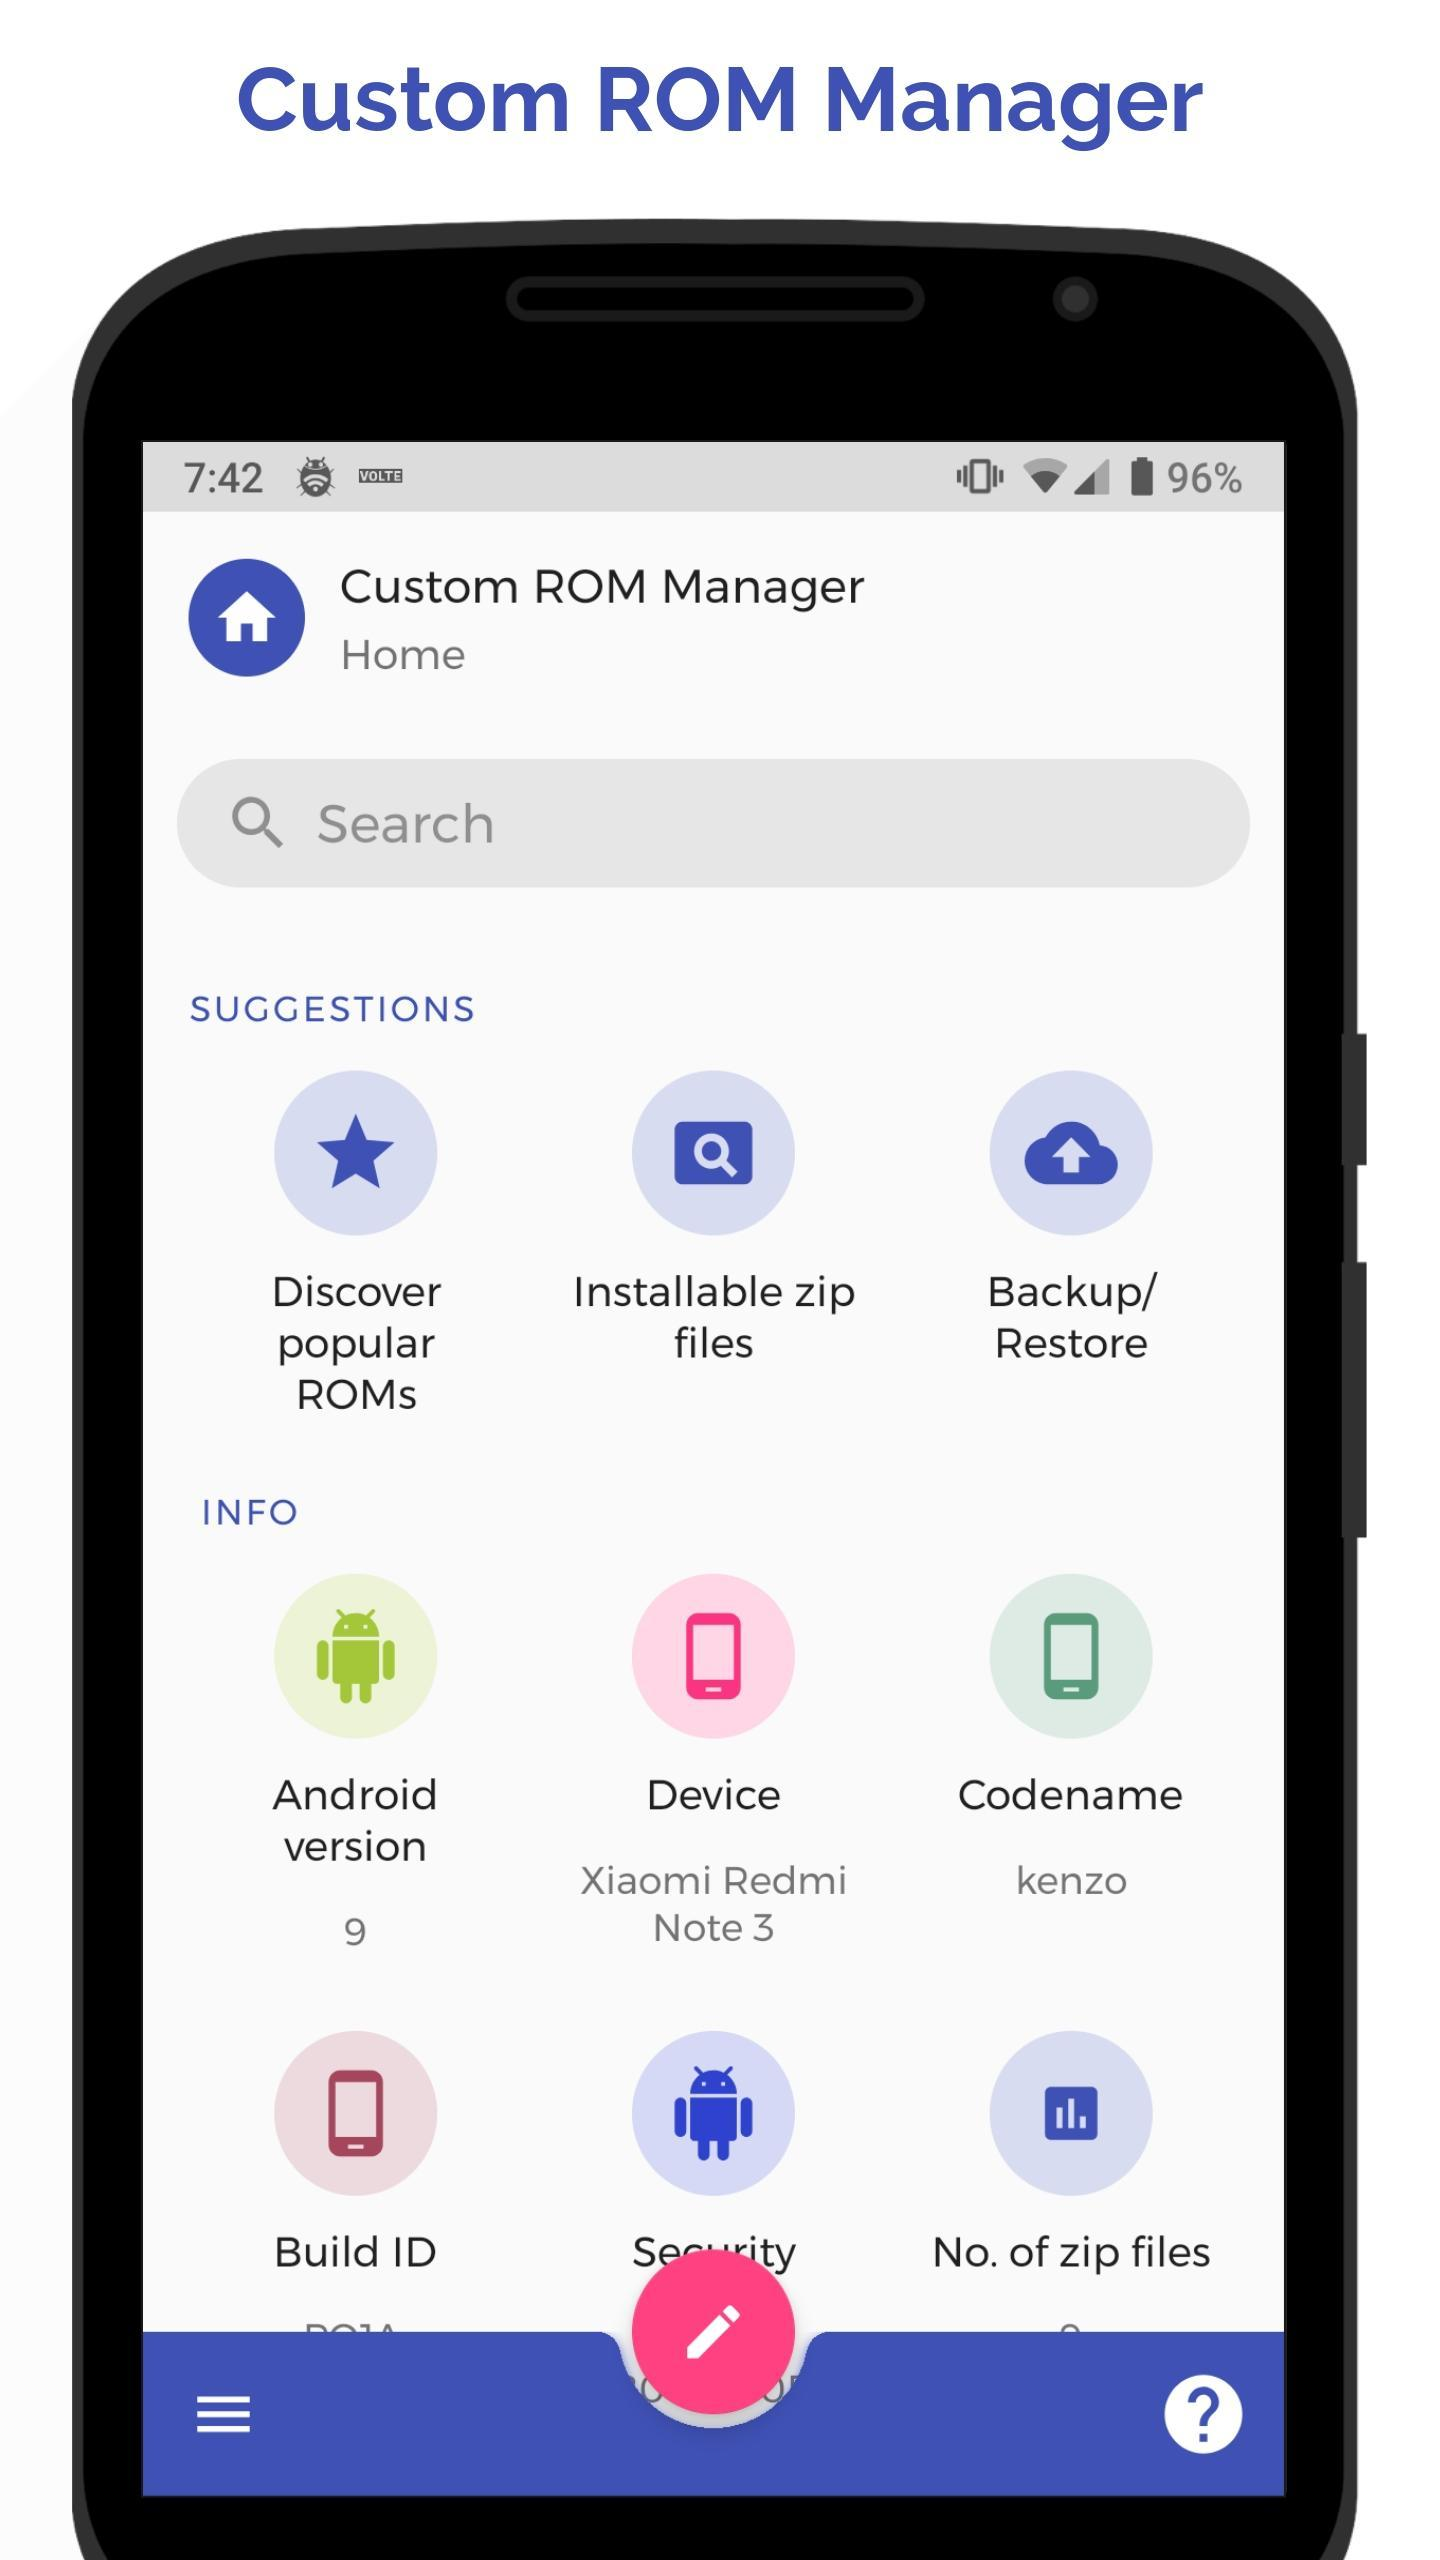 ROOT] Custom ROM Manager for Android - APK Download